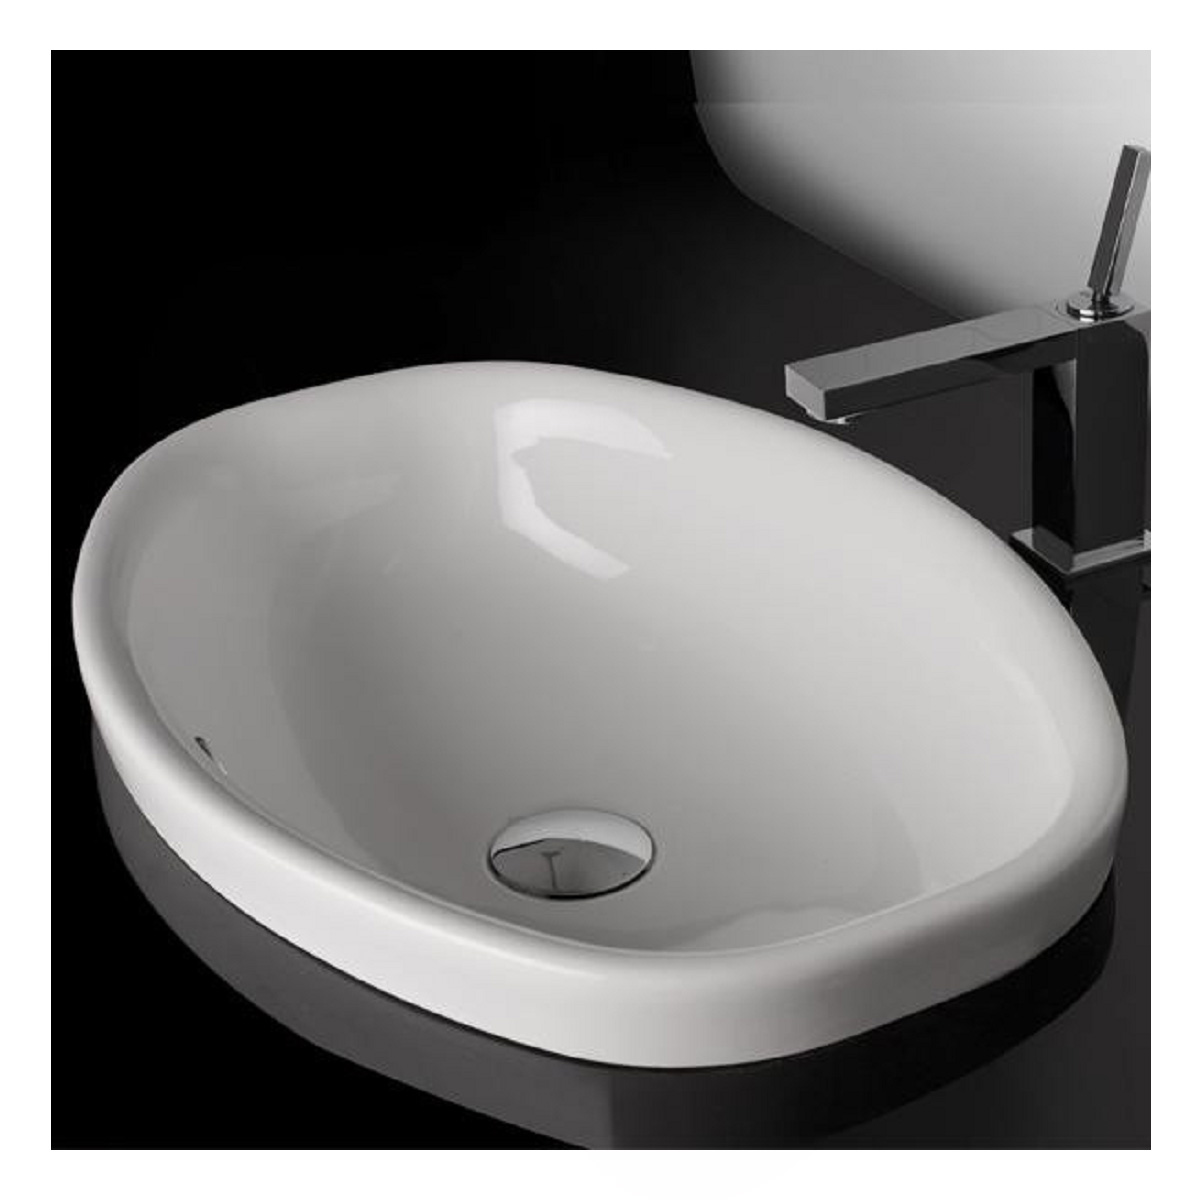 Studio Bagno Appliances Online | Home Clearance